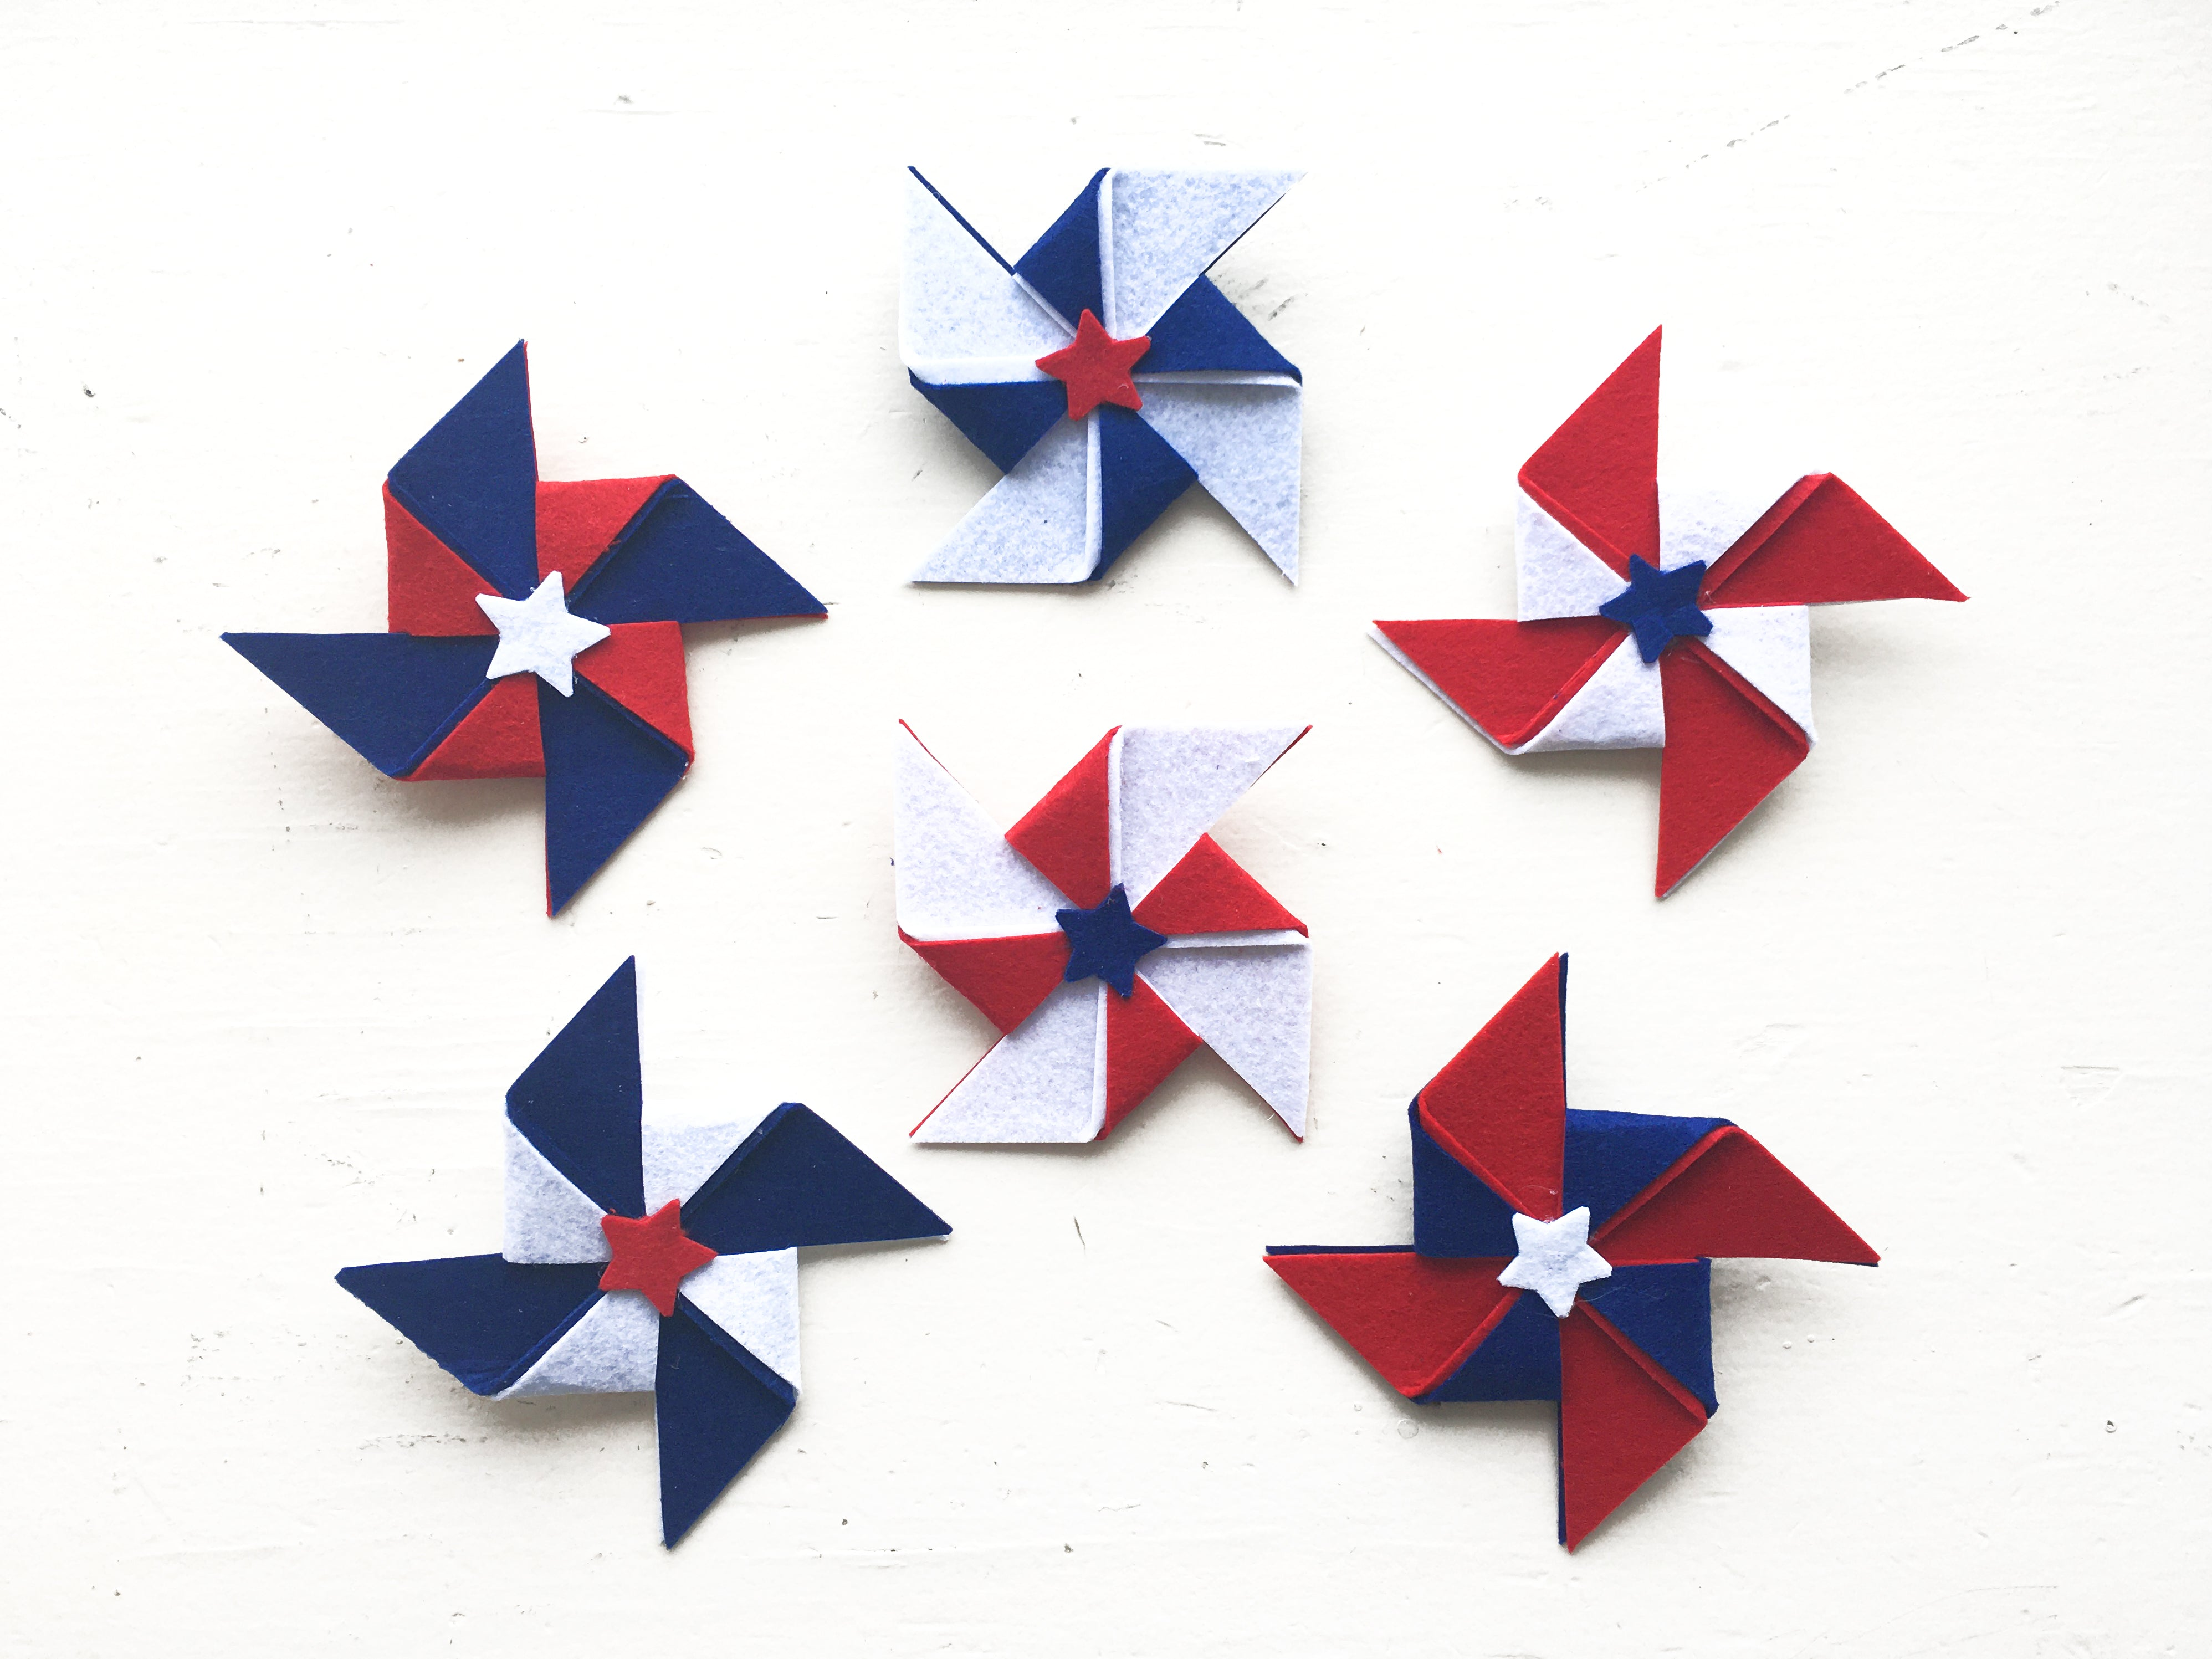 red white and blue american flag stars and stripes Cute creative patriotic arts and crafts for kids and children and the whole family to show off your independence this 4th fourth of july holiday